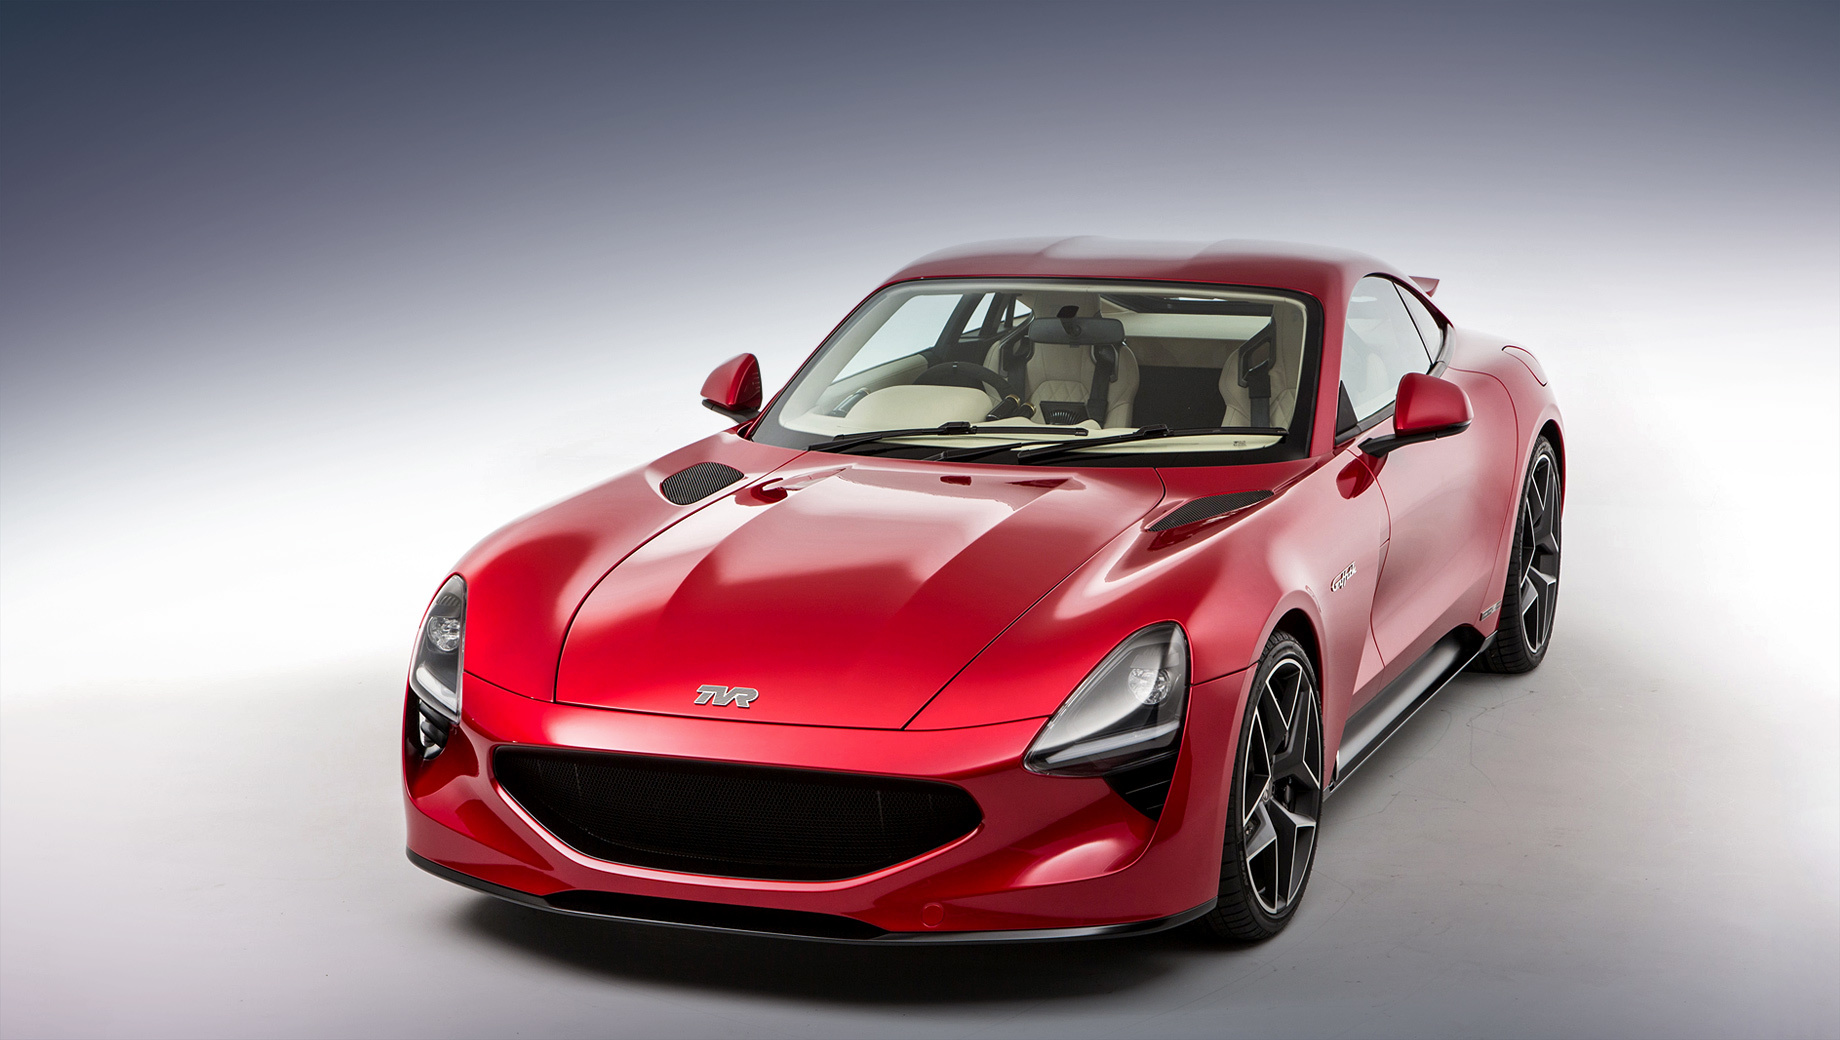 British niche carmaker TVR introduced its Griffith sports coupe in the fall of 2017. The announced initial production run of 500 units is currently almost sold out via pre-orders, but not a single car has reached its buyer yet.